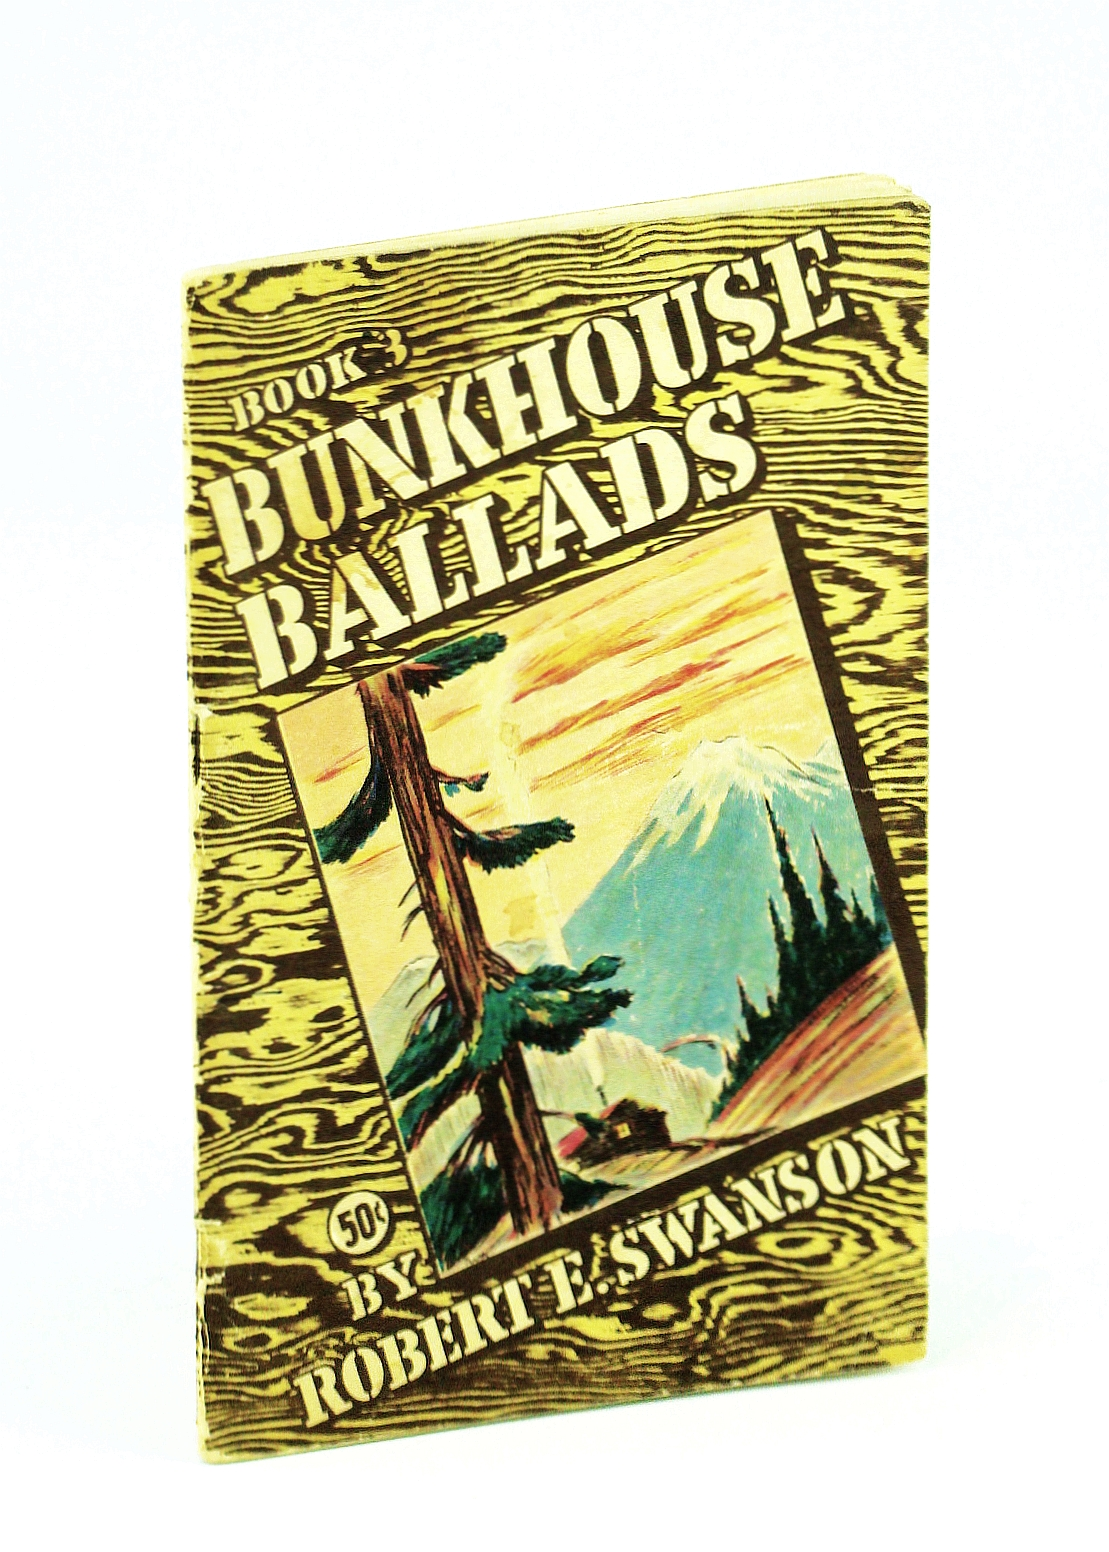 Image for Bunkhouse Ballads - Book 3